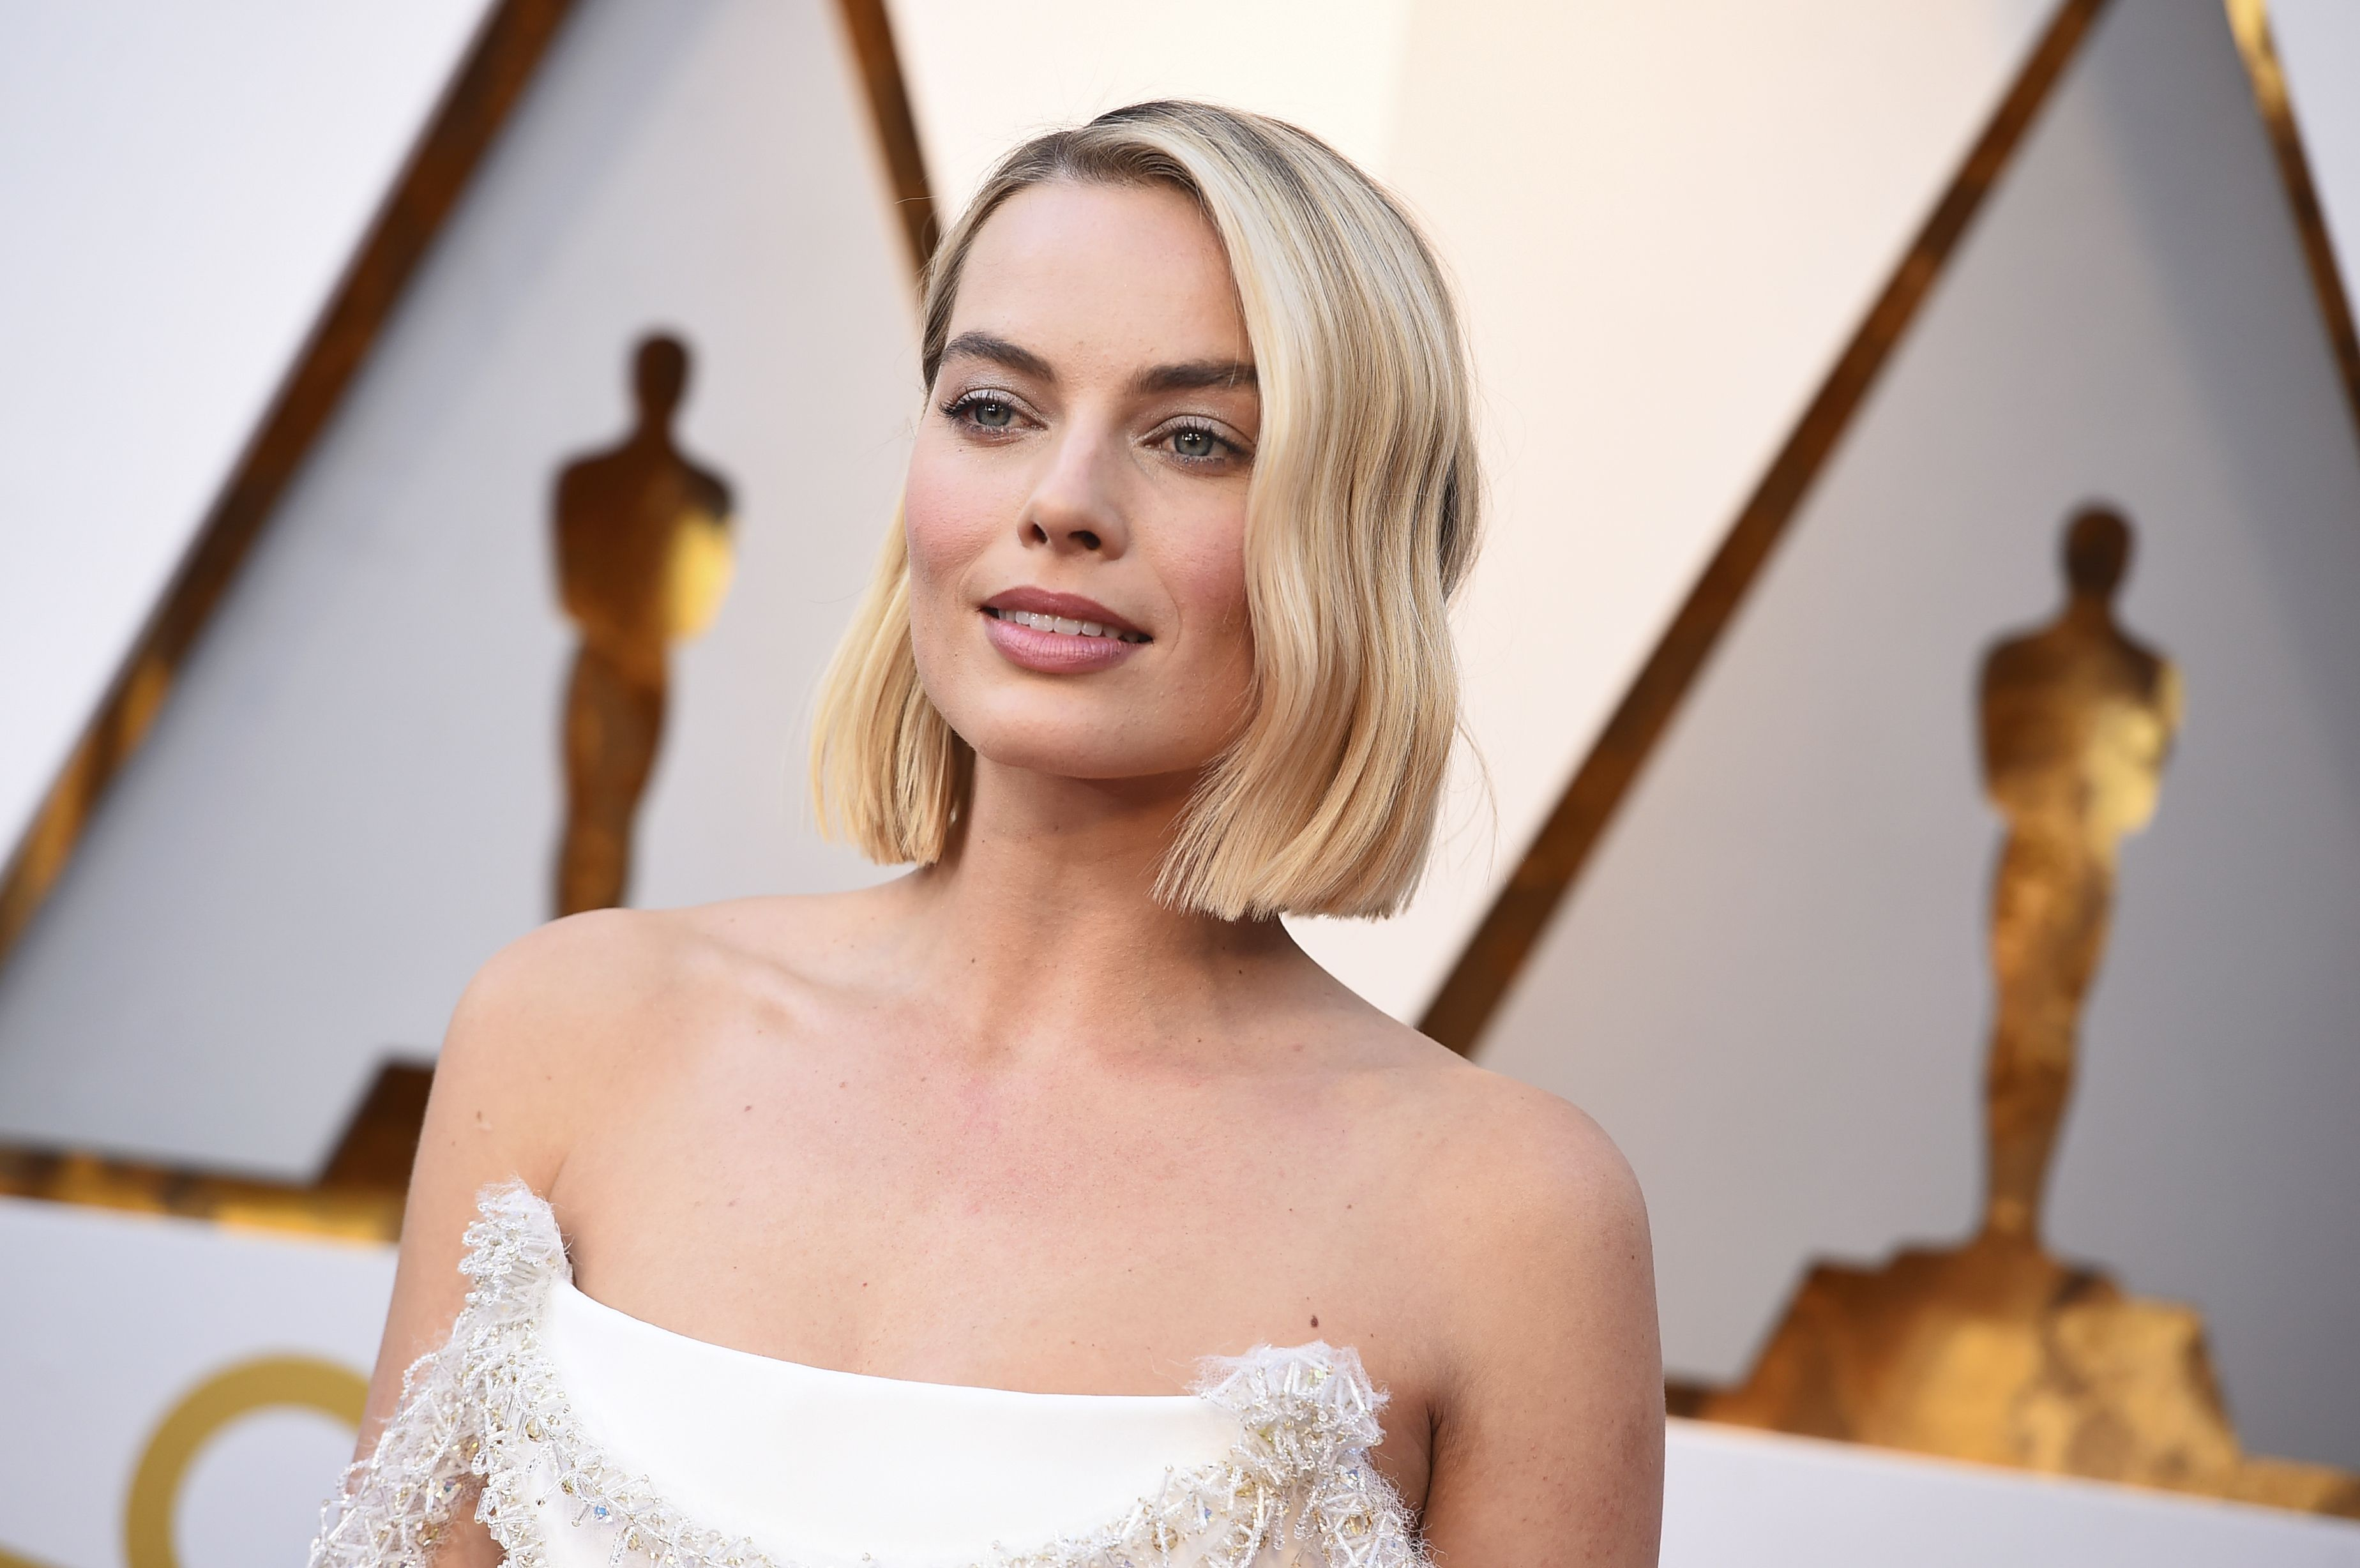 Margot Robbie arrives at the Oscars, at the Dolby Theatre in Los Angeles90th Academy Awards - Arrivals, Los Angeles, USA - 04 Mar 2018